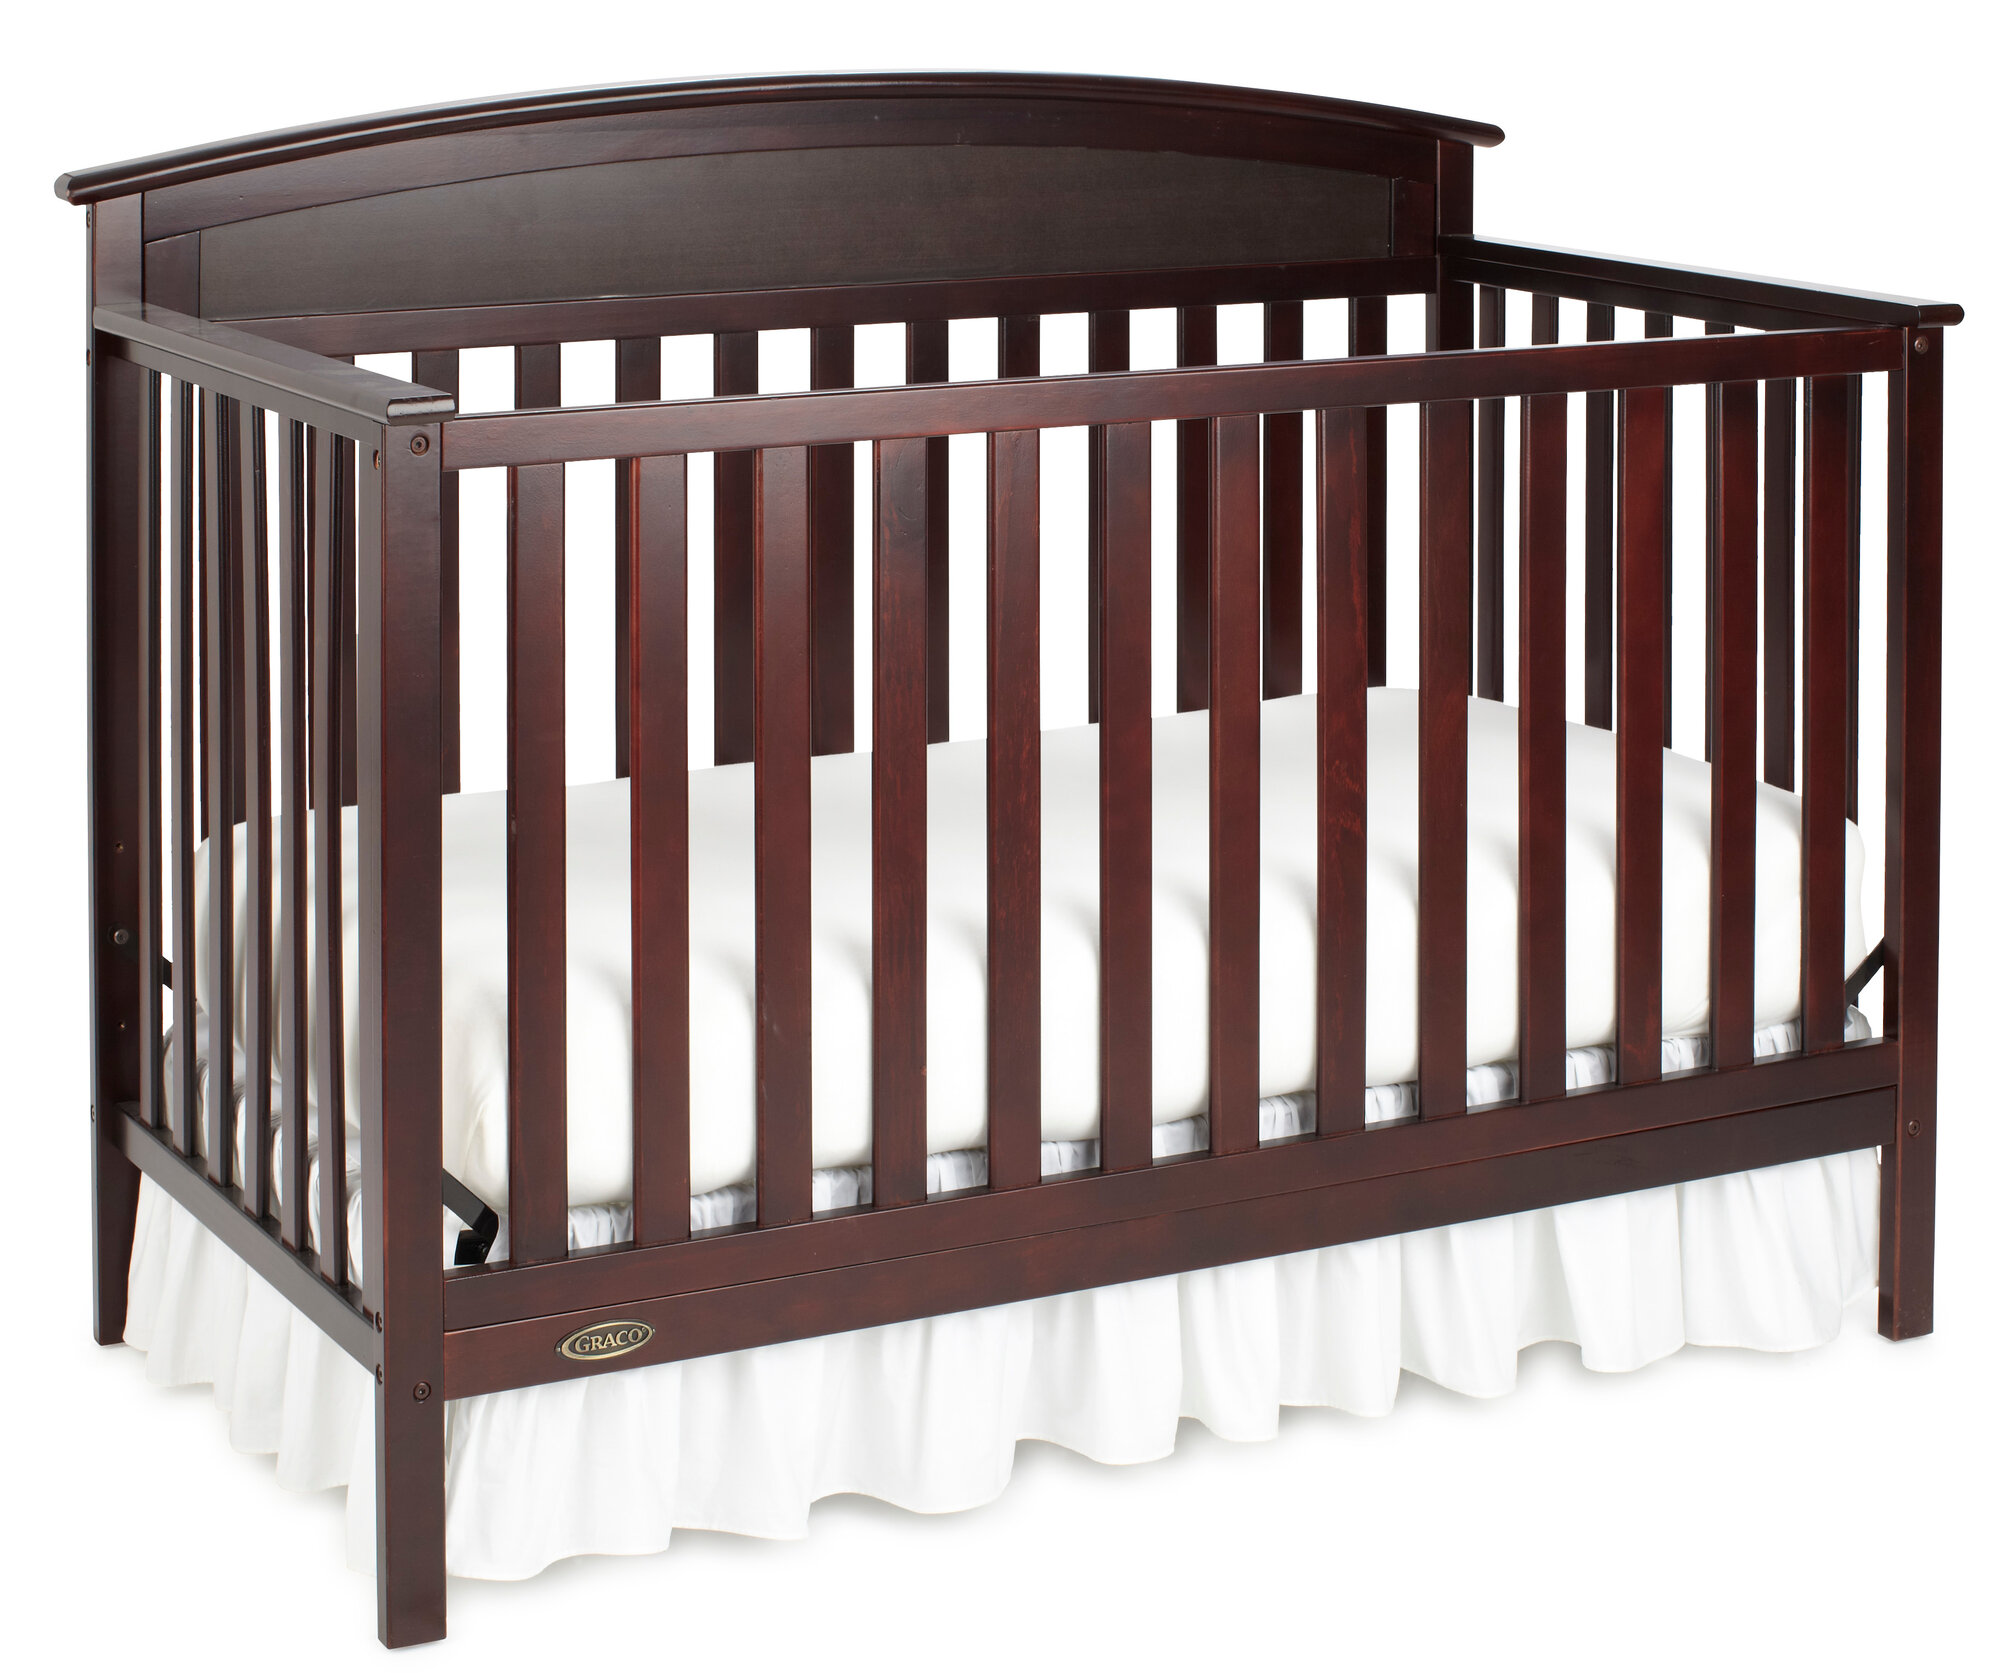 Graco Benton 3 in 1 Convertible Crib | eBay